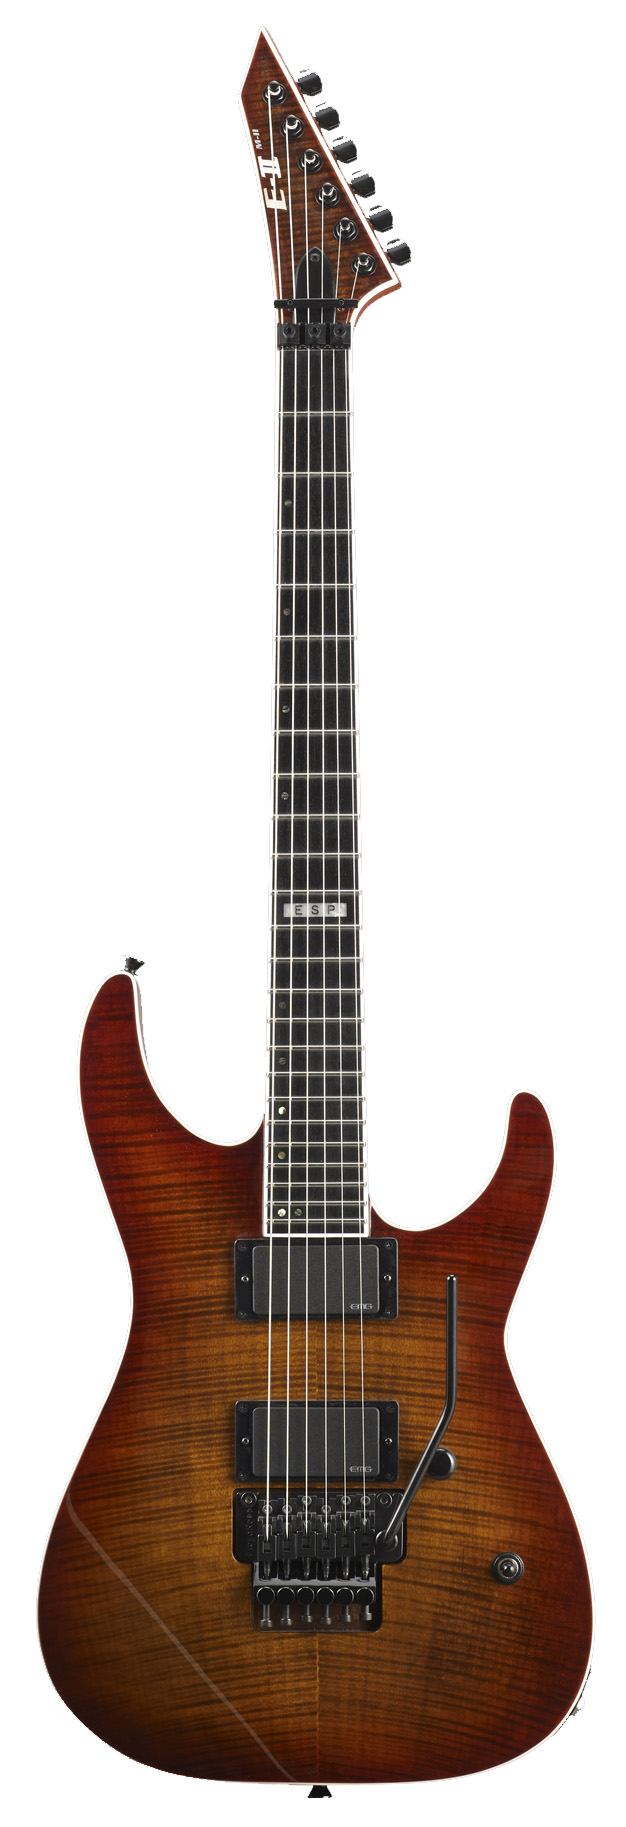 ESP M-II FM ACSB E-II M Series Flamed Maple Top Electric Guitar with Amber Cherry Sunburst Finish